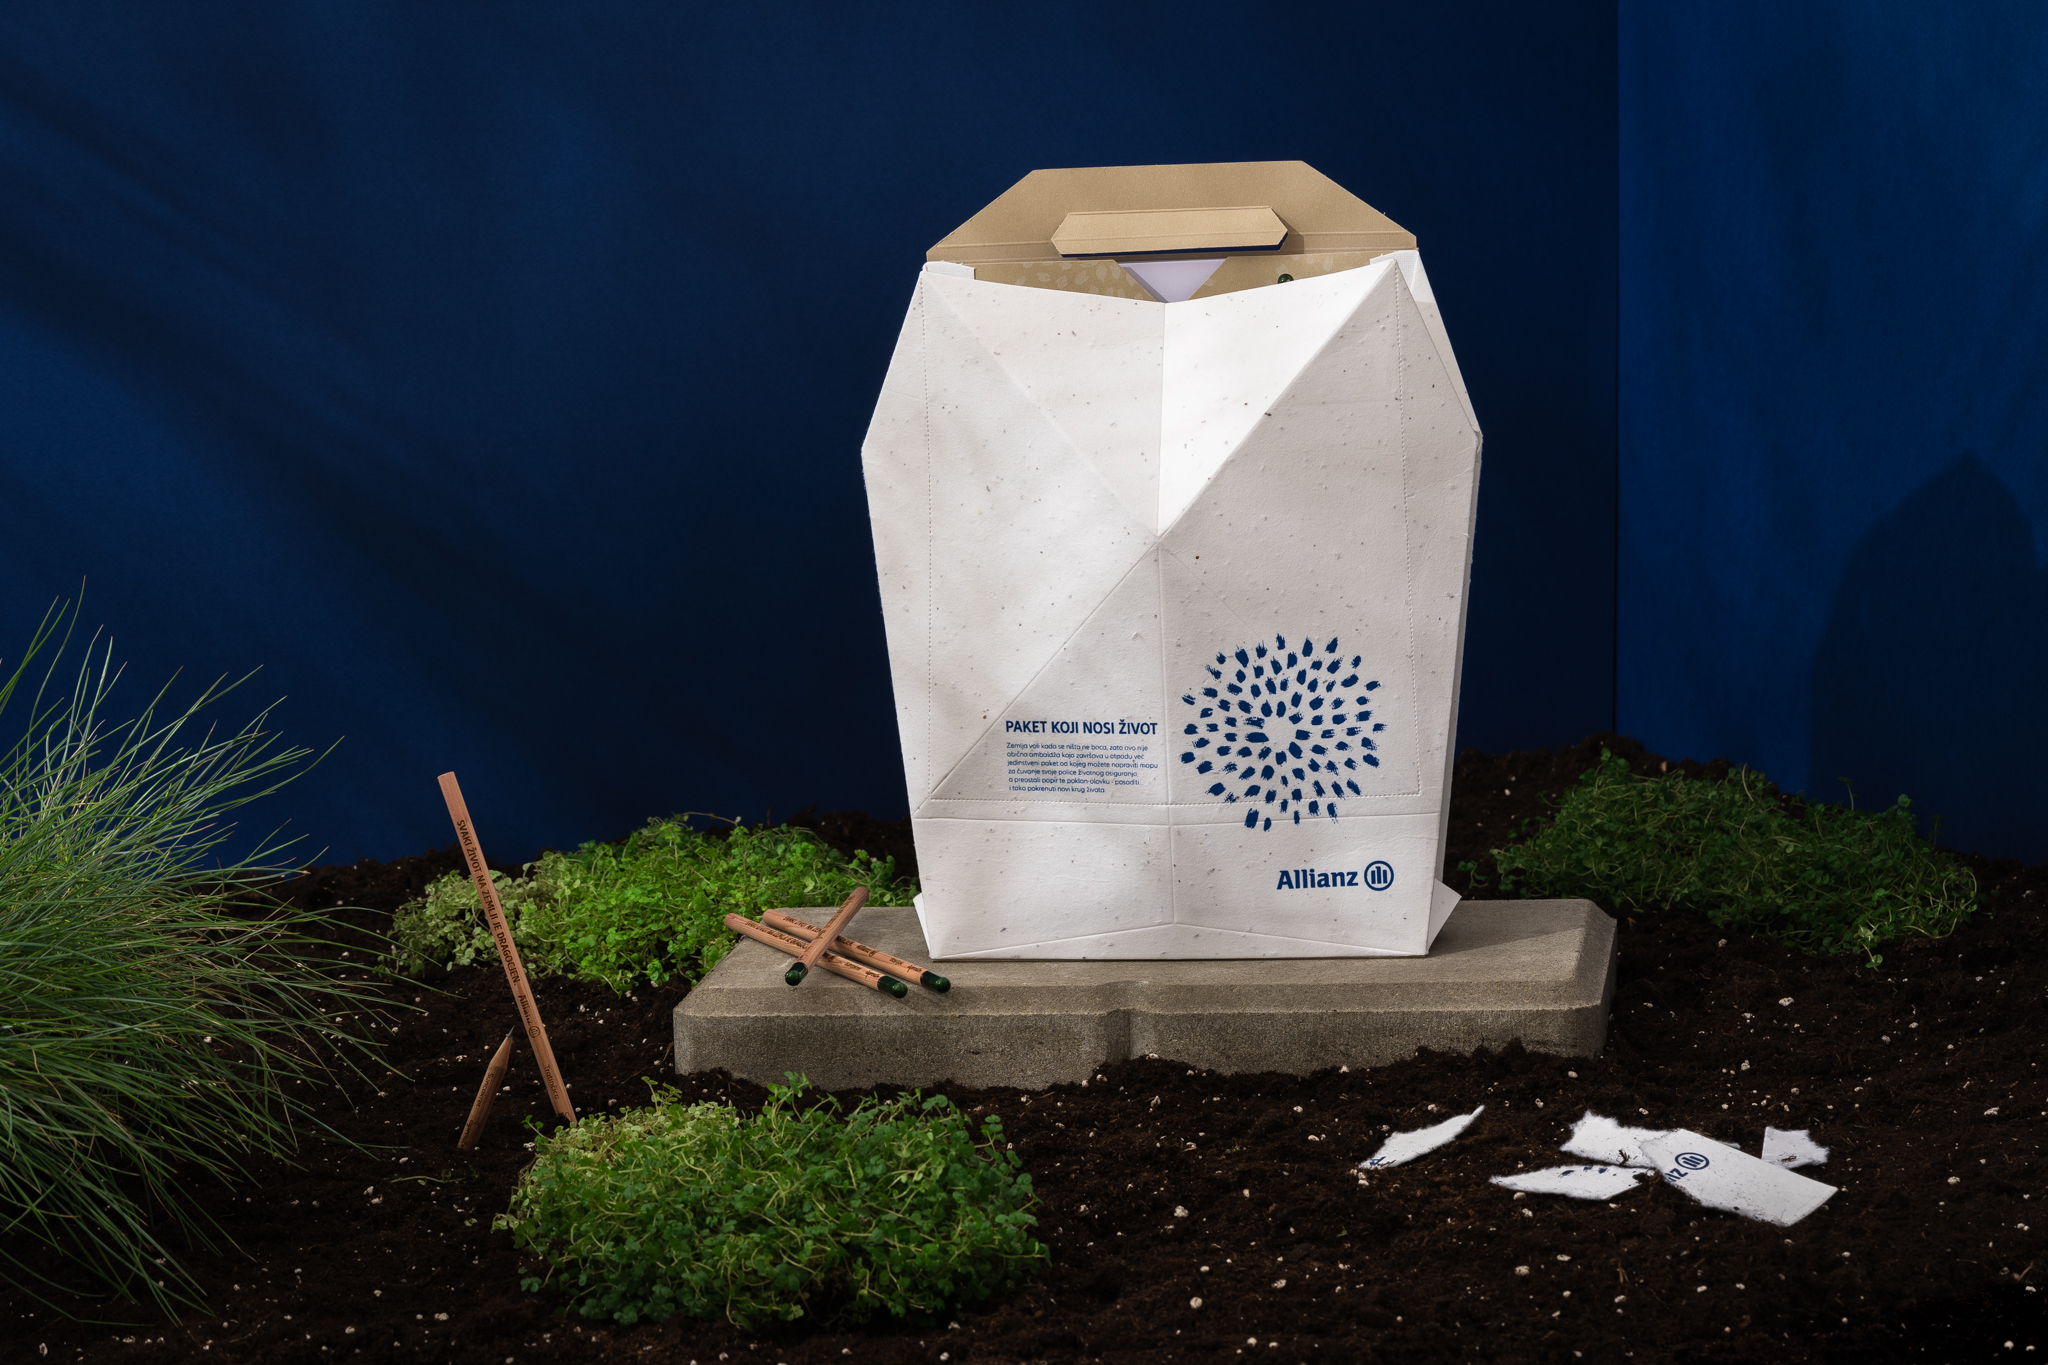 Biodegradable Packaging Made with Seed Paper, Green Design from Allianz